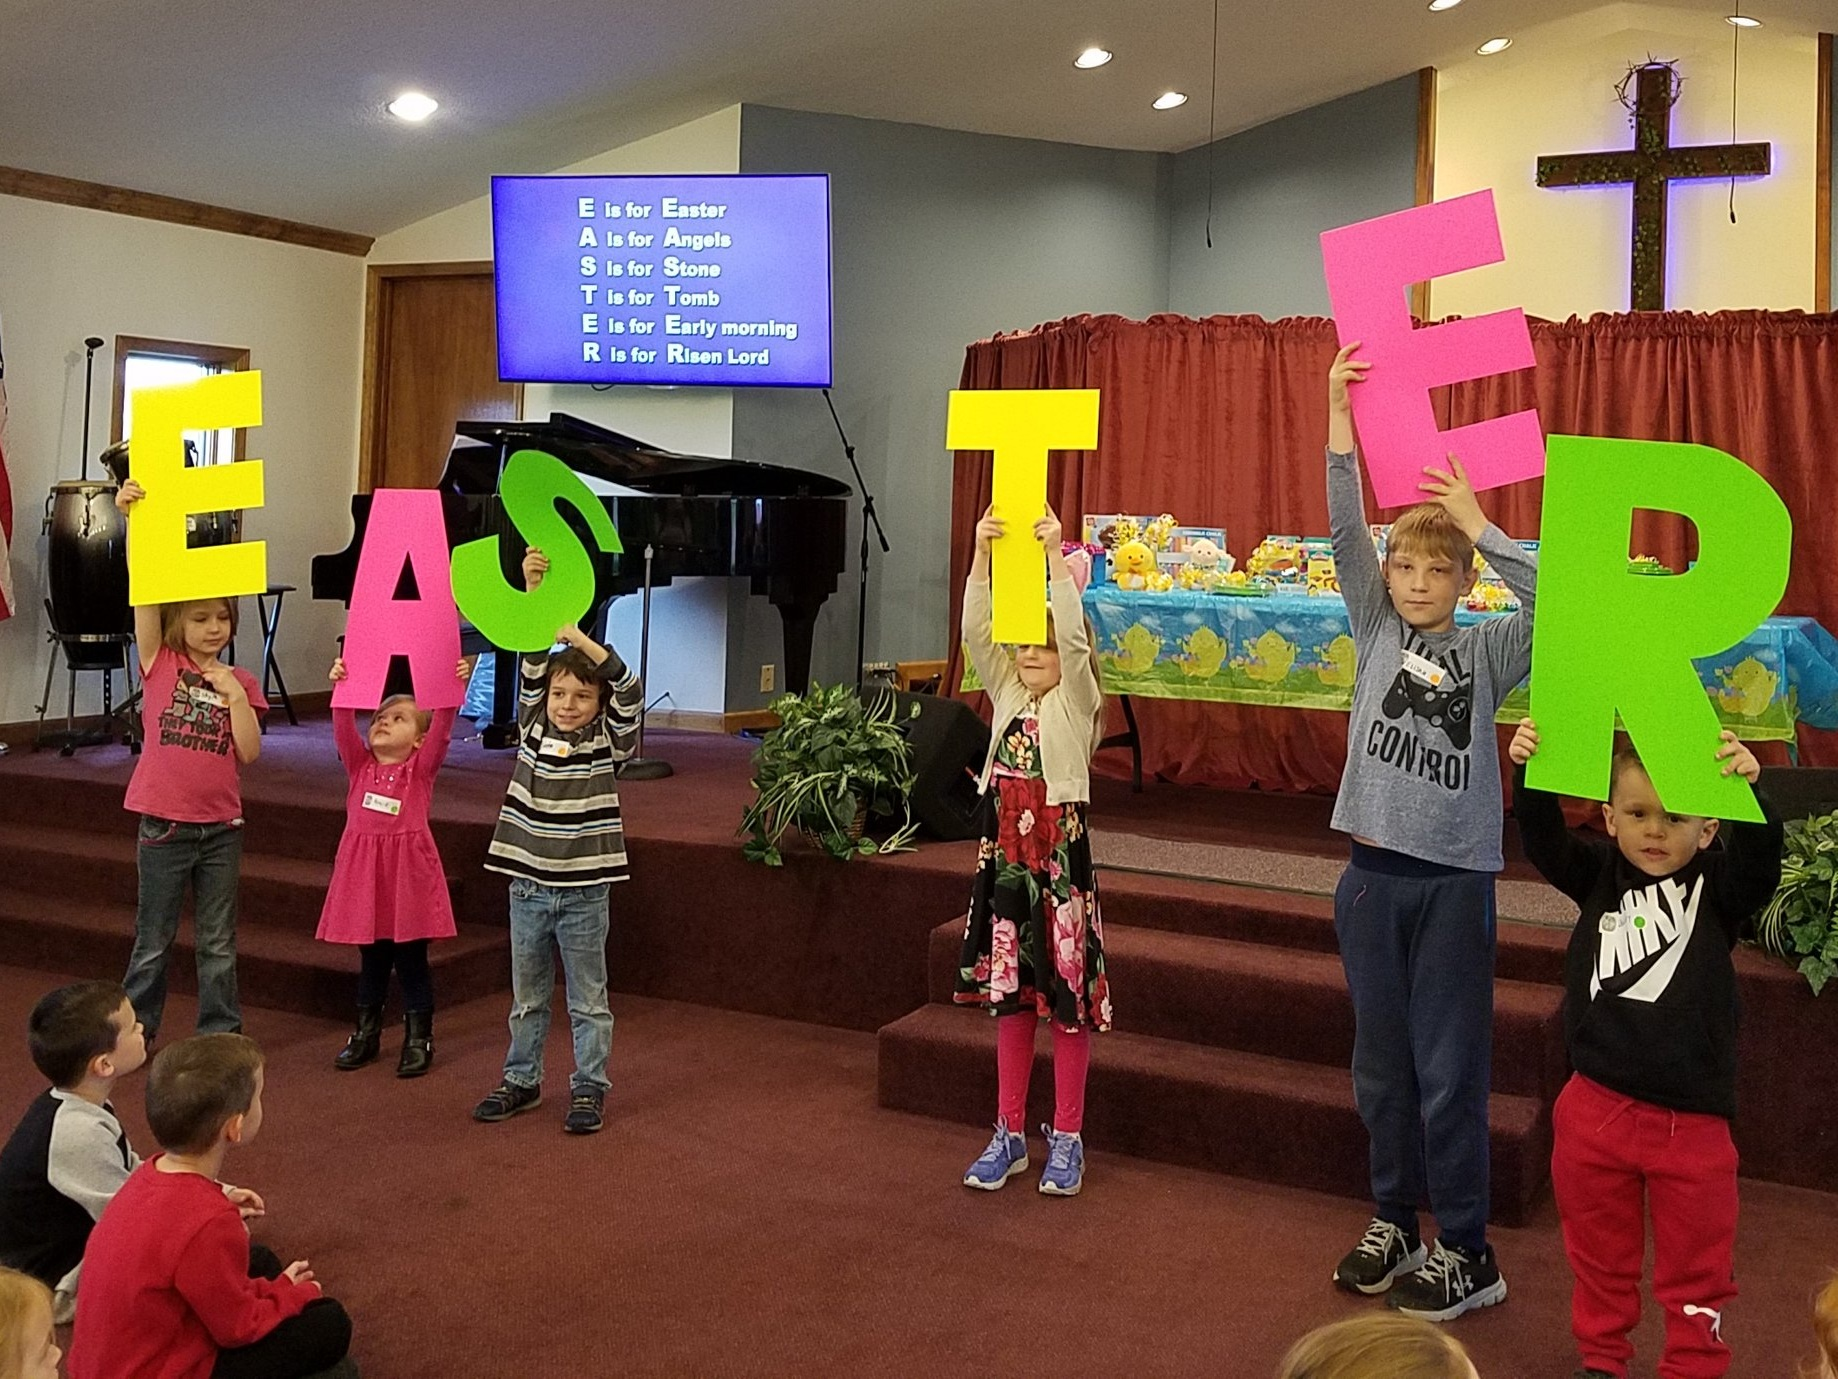 Easter Celebration 2019 - We had a great time at the Easter Celebration & Egg Hunt, even with the rain! We had 71 kids, and lots of parents, too. It was fun to share the real reason for Easter … JESUS!